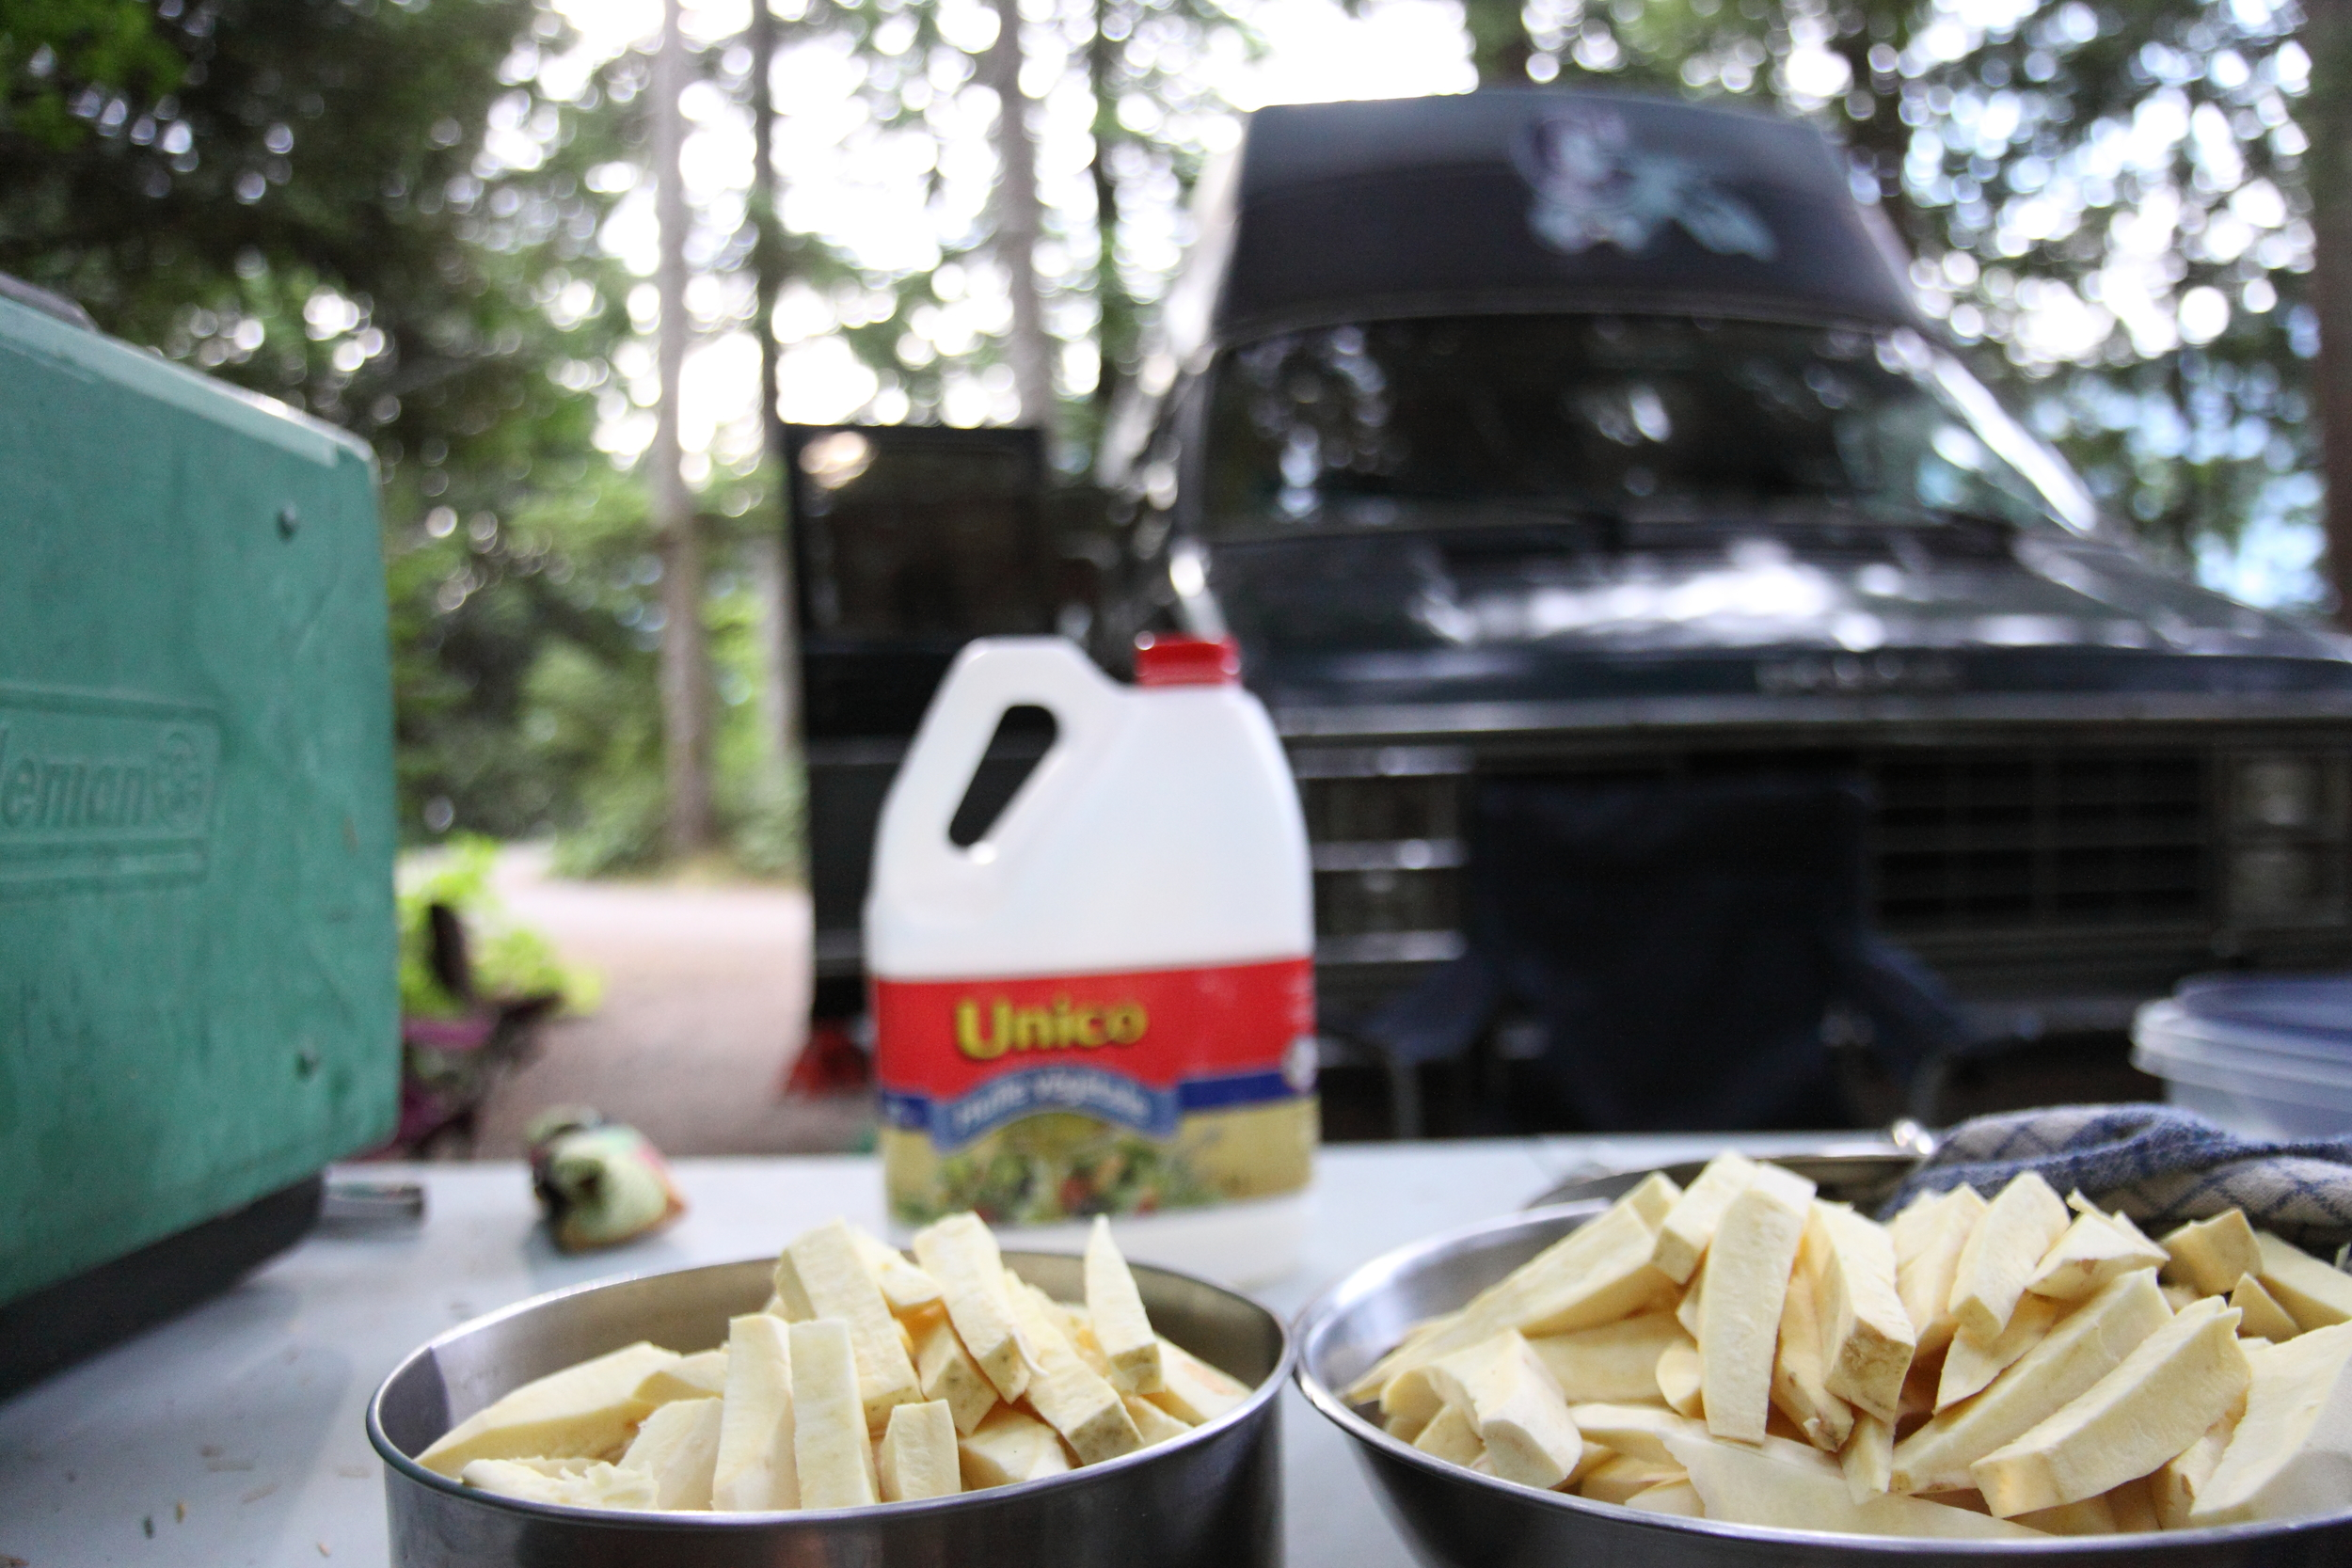 The Substrate - Poutine night in the campground at the base of the Chief.